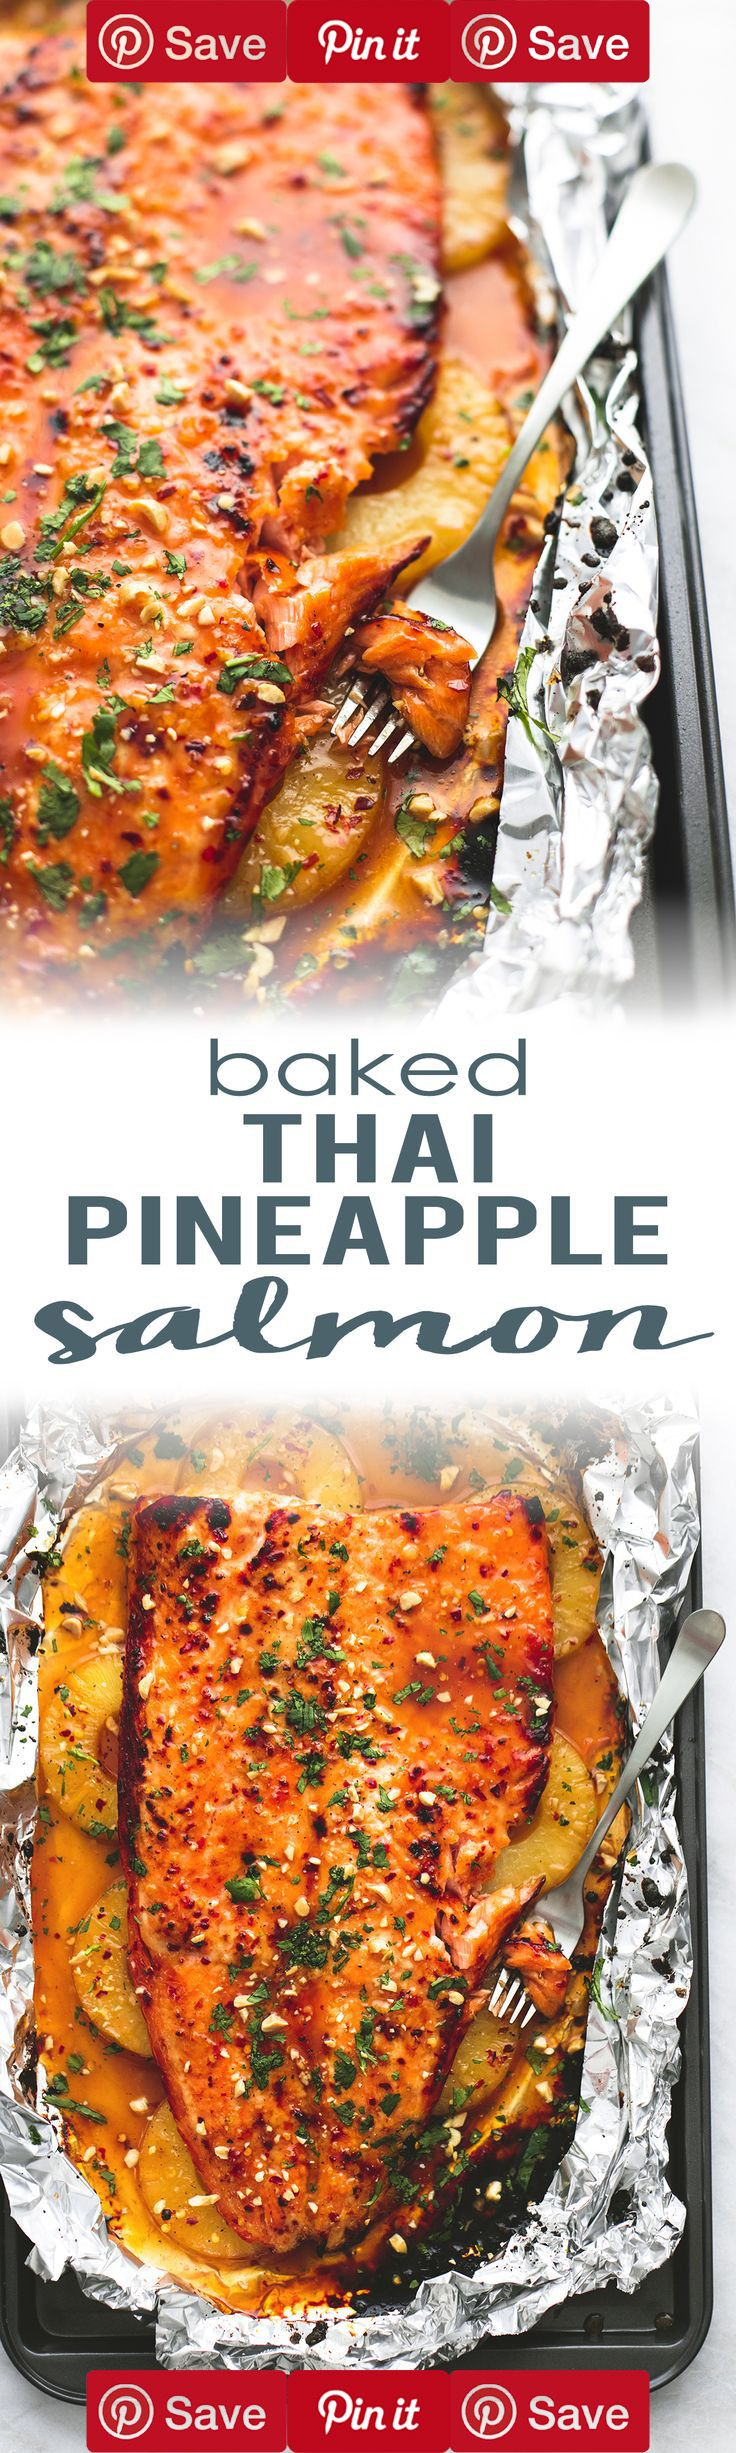 Baked Thai Pineapple Salmon in Foil is a delicious, easy, 30-minute meal bursting with flavor!   lecremedelacrumb.com